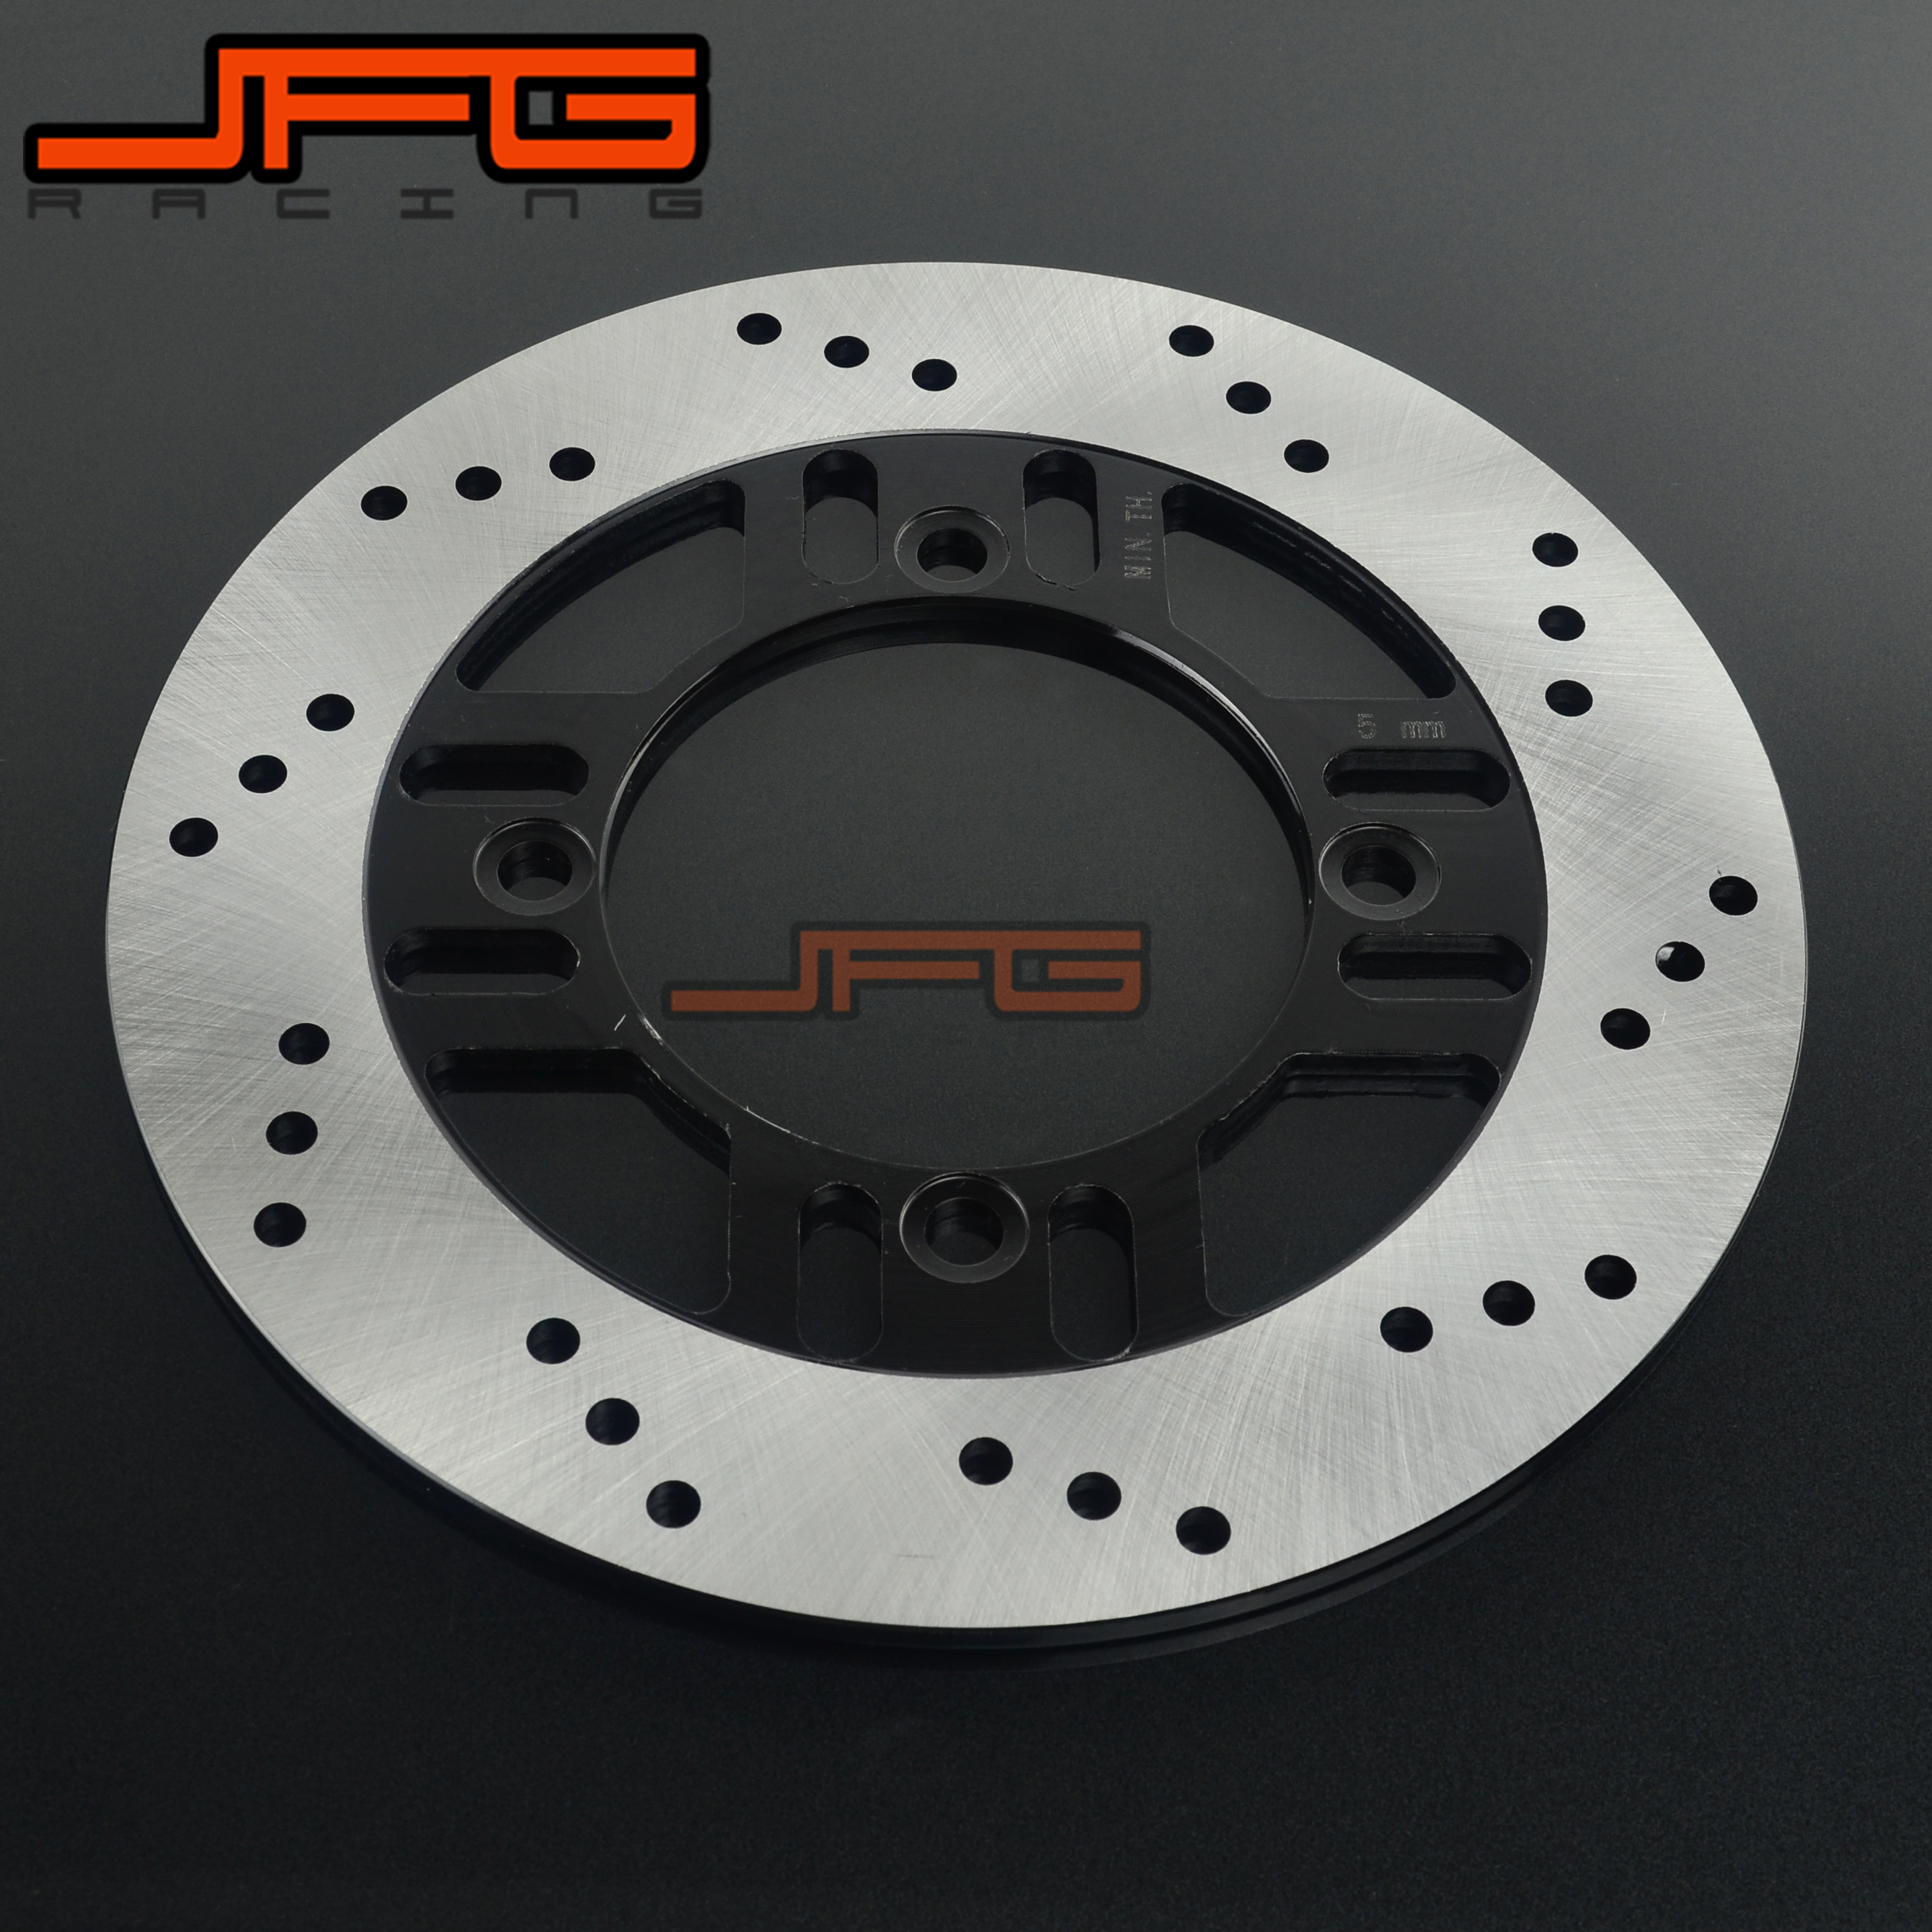 Motorcycle Outer Diameter 240mm Stainless Steel Rear Brake Disc Rotor For KAWASAKI ZXR400 89-94 ZXR-4 ZR400 ZR550 ZZR400 ZZR600 for honda nc700 nc750 ctx700 nm4 vultus motorcycle accessories rear wheel brake disc rotor od 240mm stainless steel